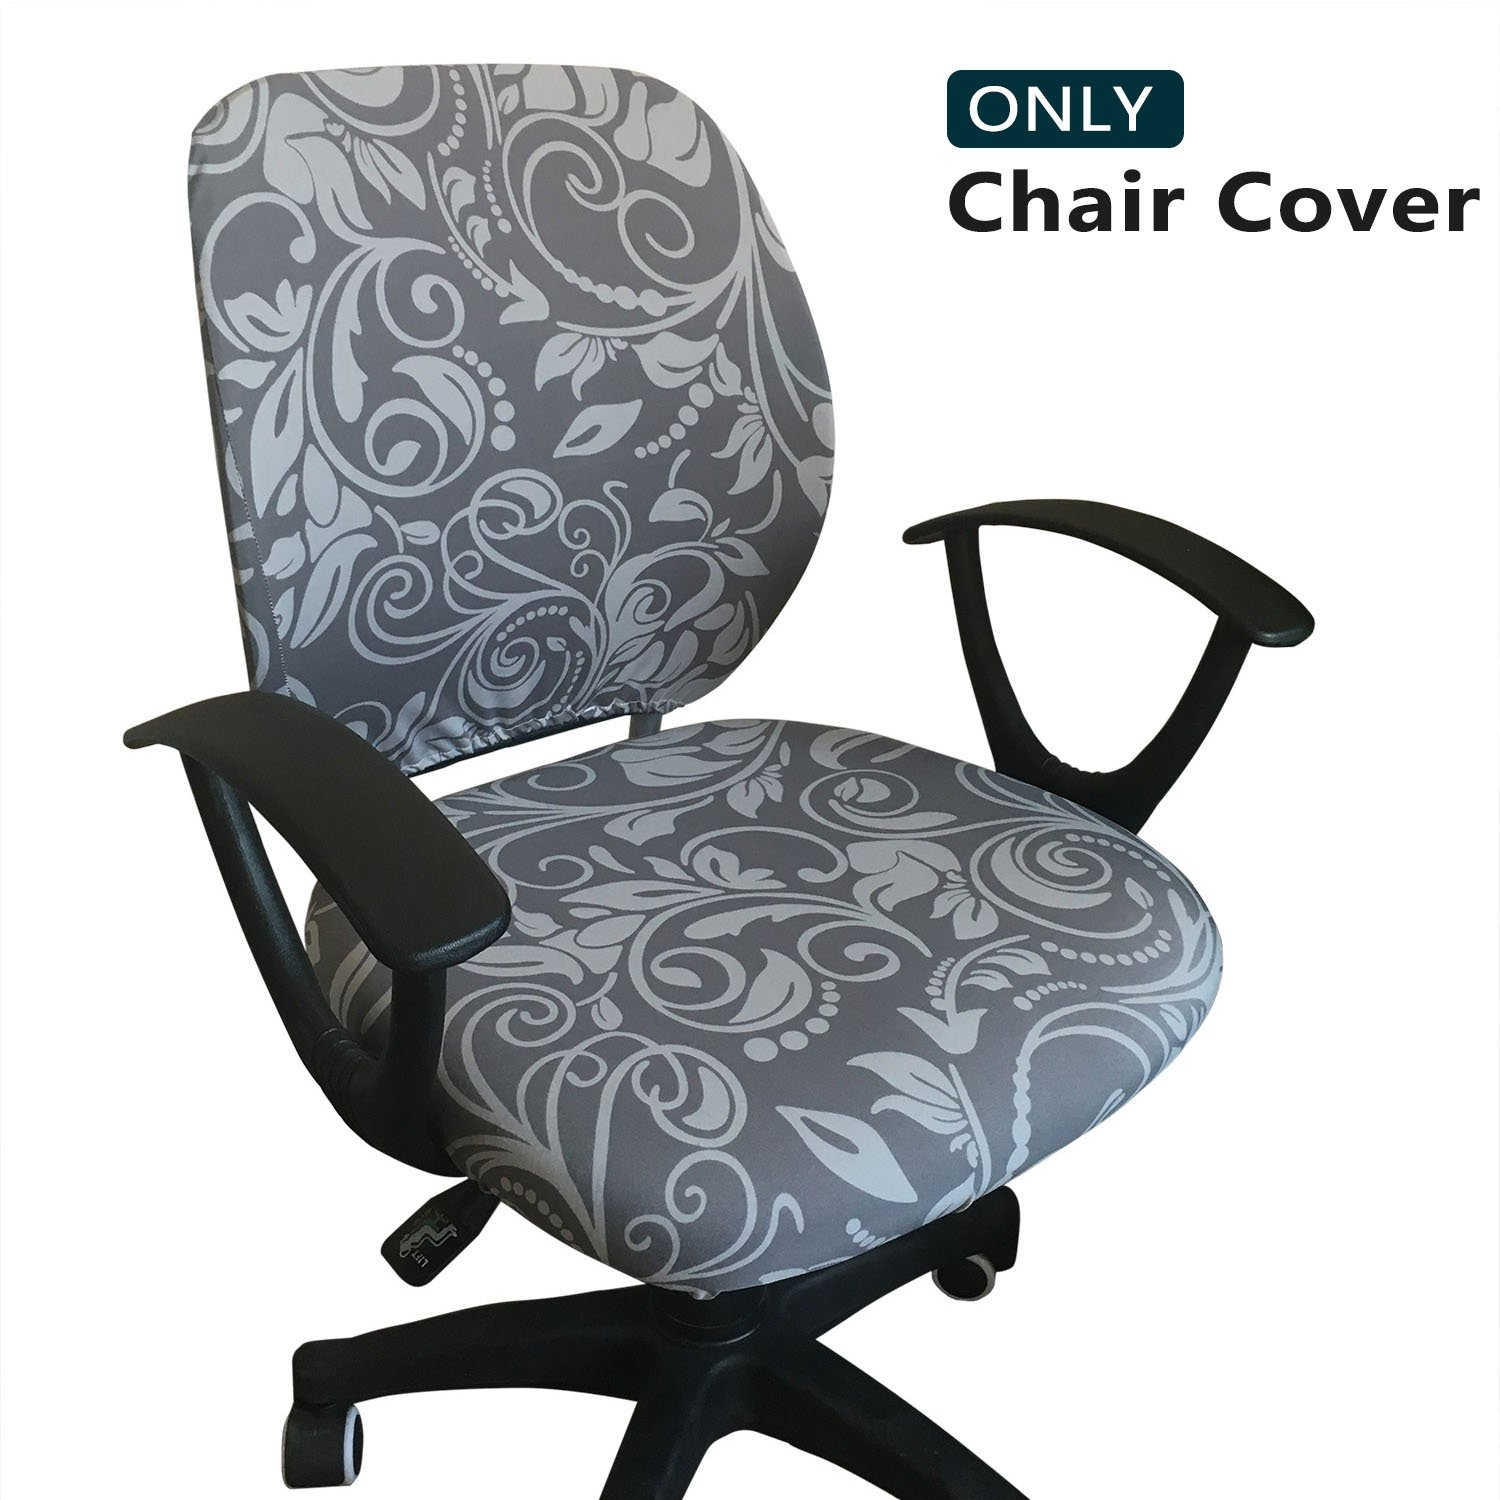 Melaluxe Computer Office Chair Cover - Protective & Stretchable Universal Chair Covers Stretch Rotating Chair Slipcover by Melaluxe